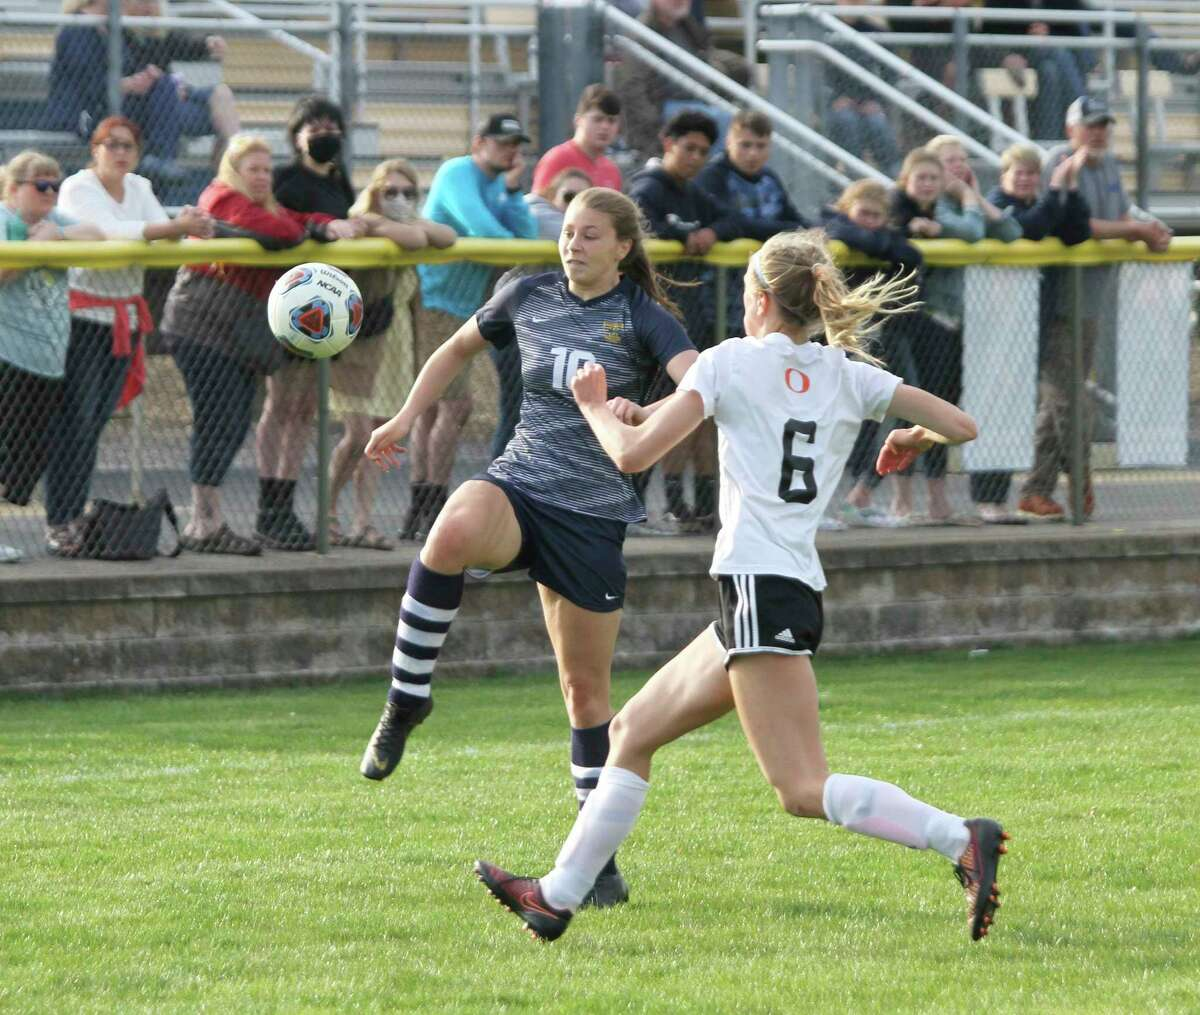 Manistee's Allison Kelley looks to gather the ball during the Chippewas' loss to Ludington on Wednesday night at Chippewa Field. (Dylan Savela/News Advocate)